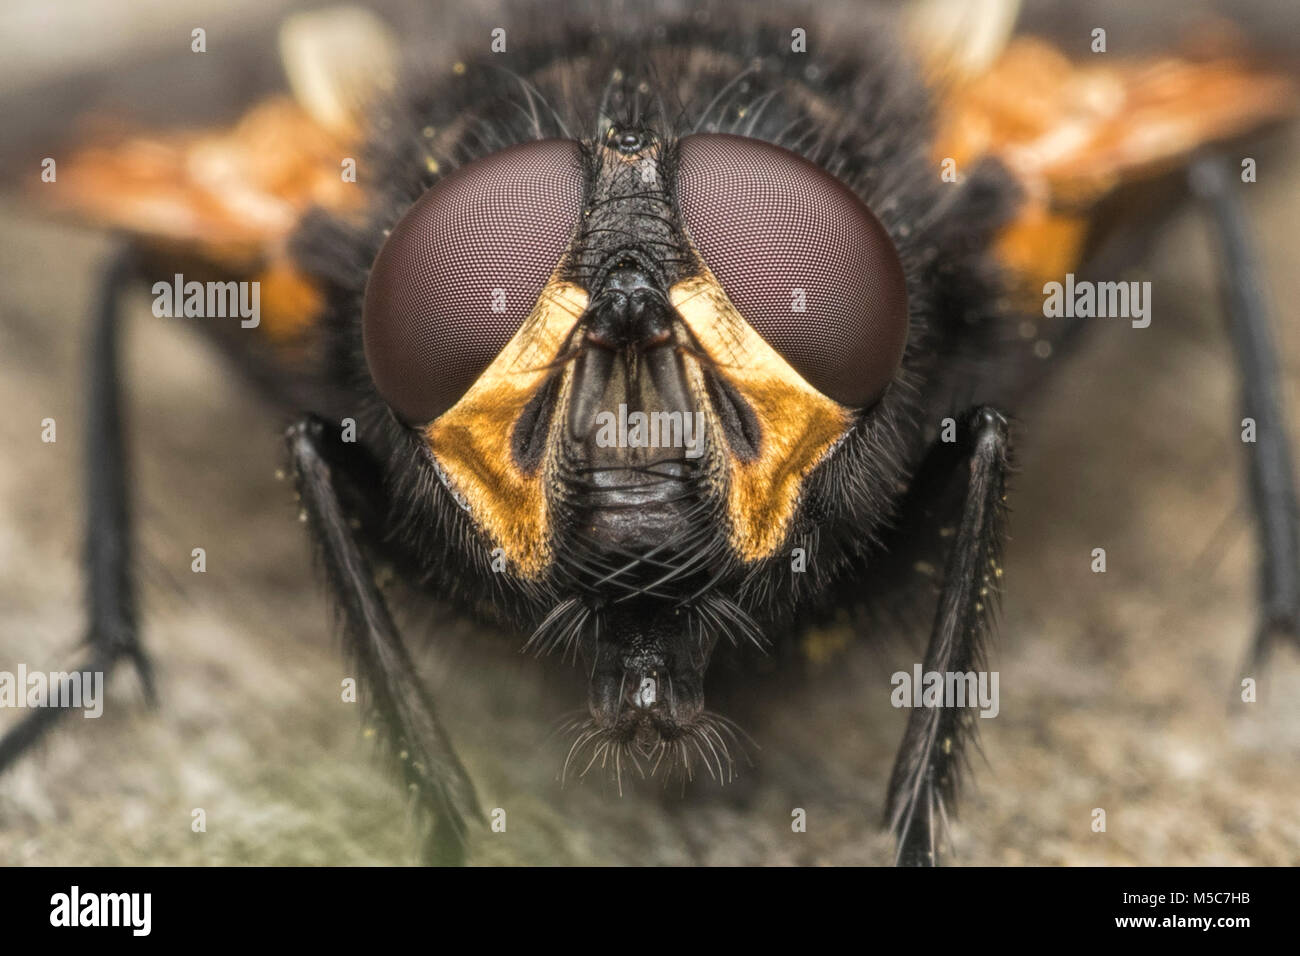 Noon Fly (Mesembrina meridiana) close up of its head showing the compound eyes. Tipperary, Ireland. - Stock Image